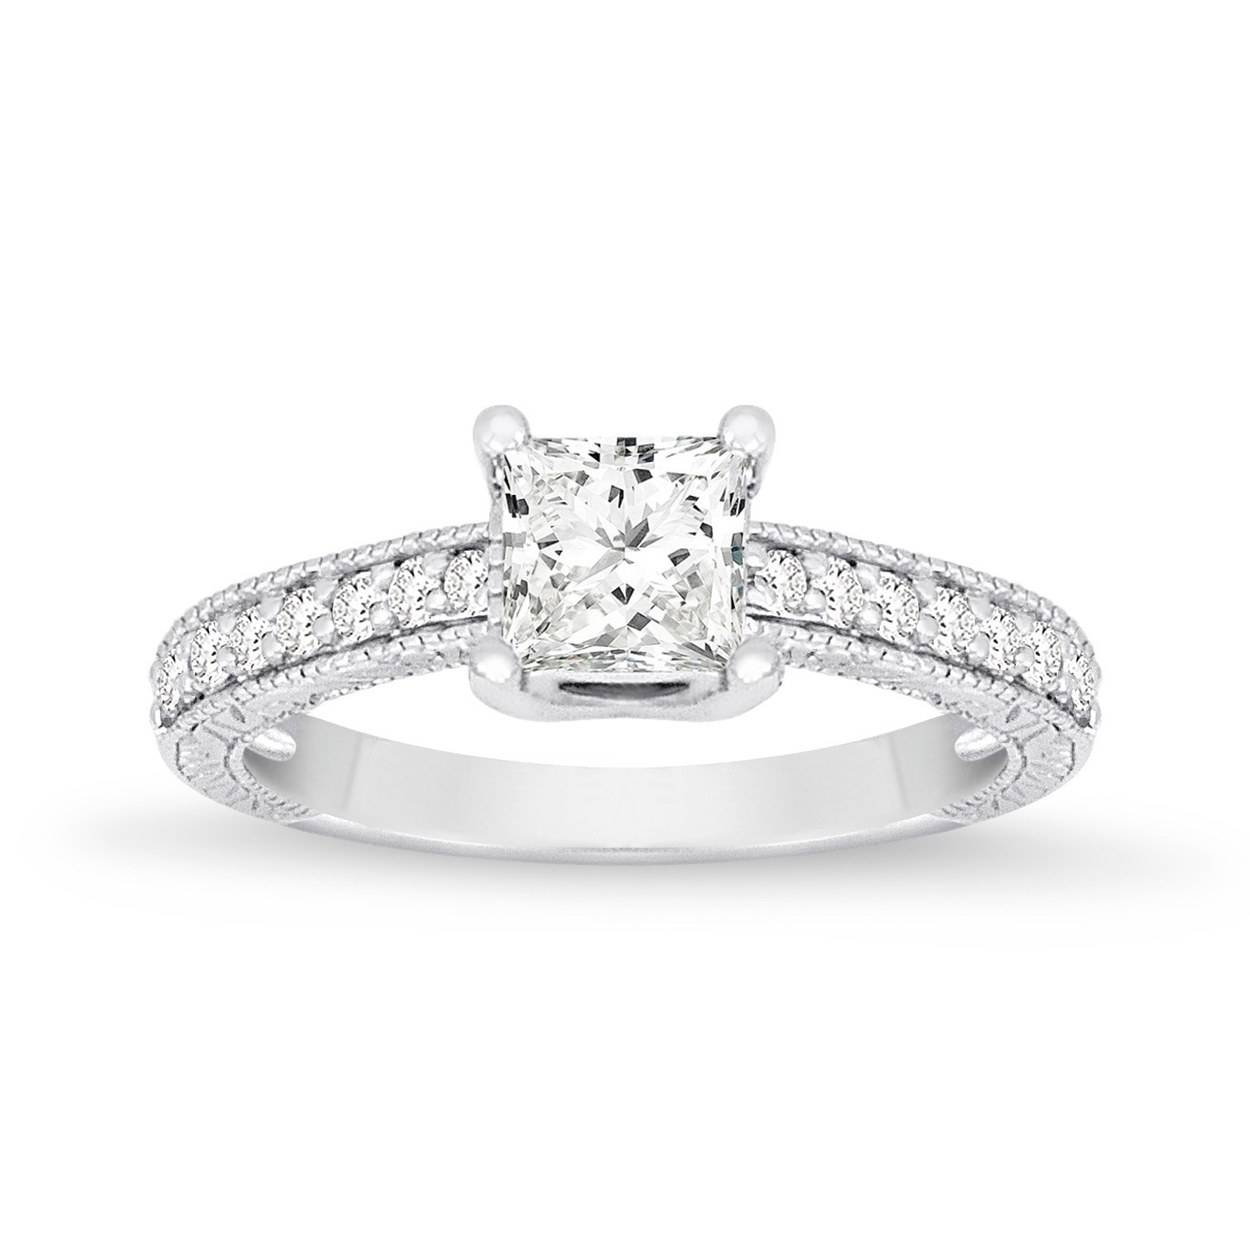 62 Diamond Engagement Rings Under $5,000 | Glamour Inside Emerald Cut Engagement Rings Under  (View 2 of 15)